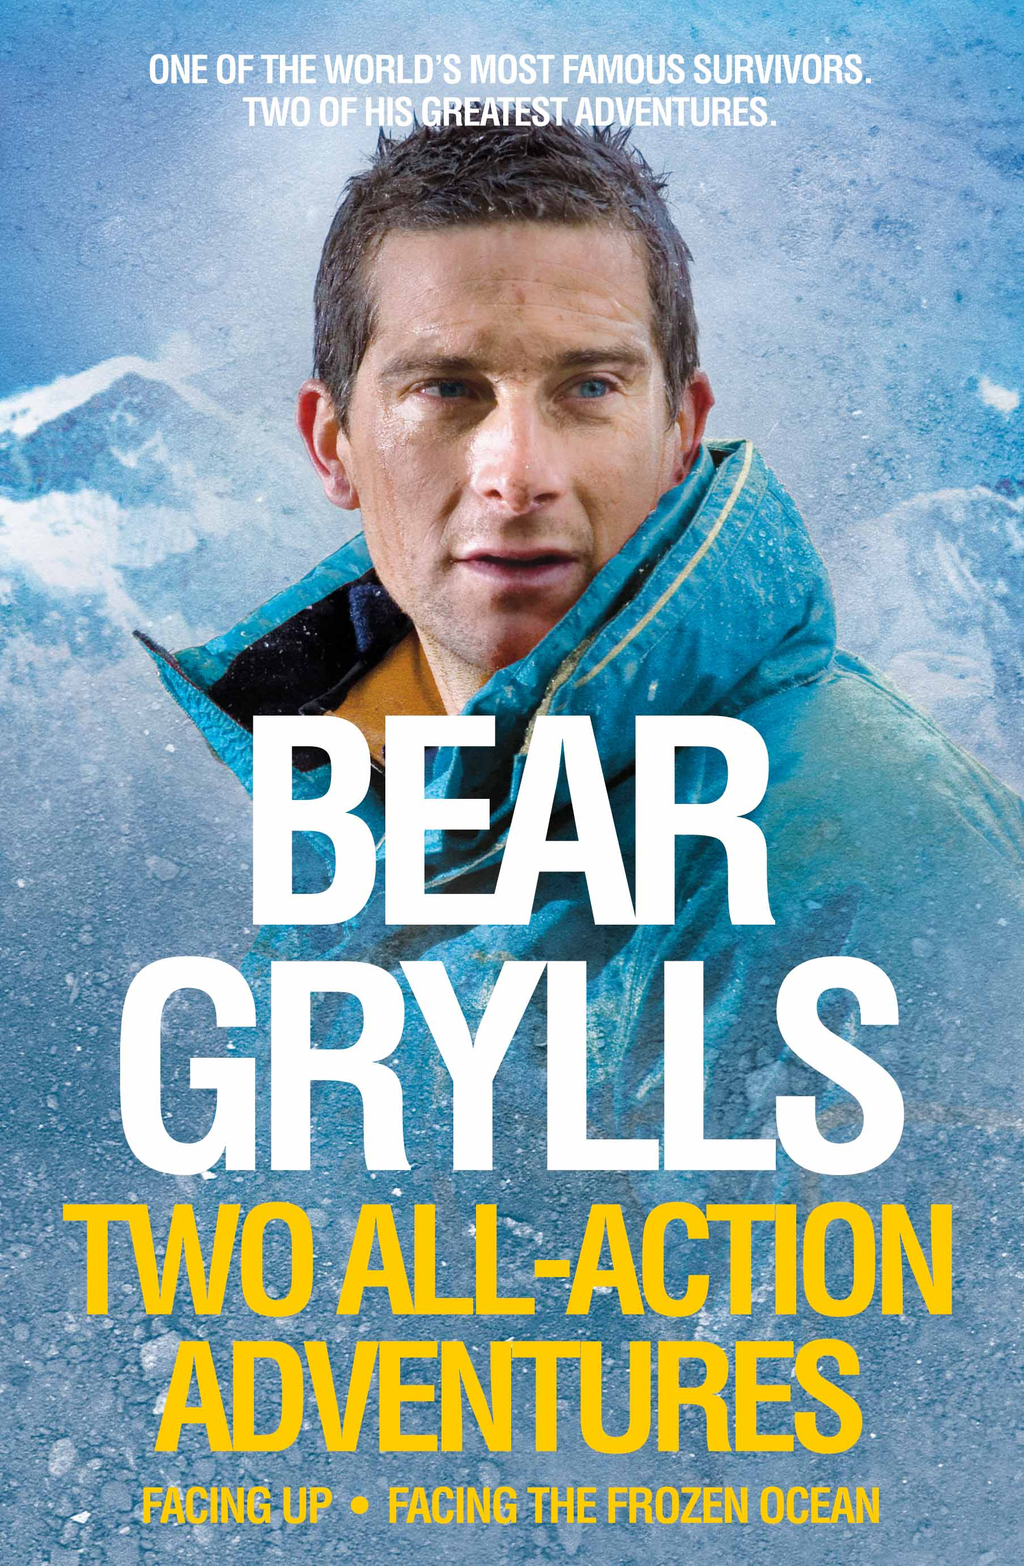 Bear Grylls: Two All-Action Adventures Facing Up - Facing the Frozen Ocean